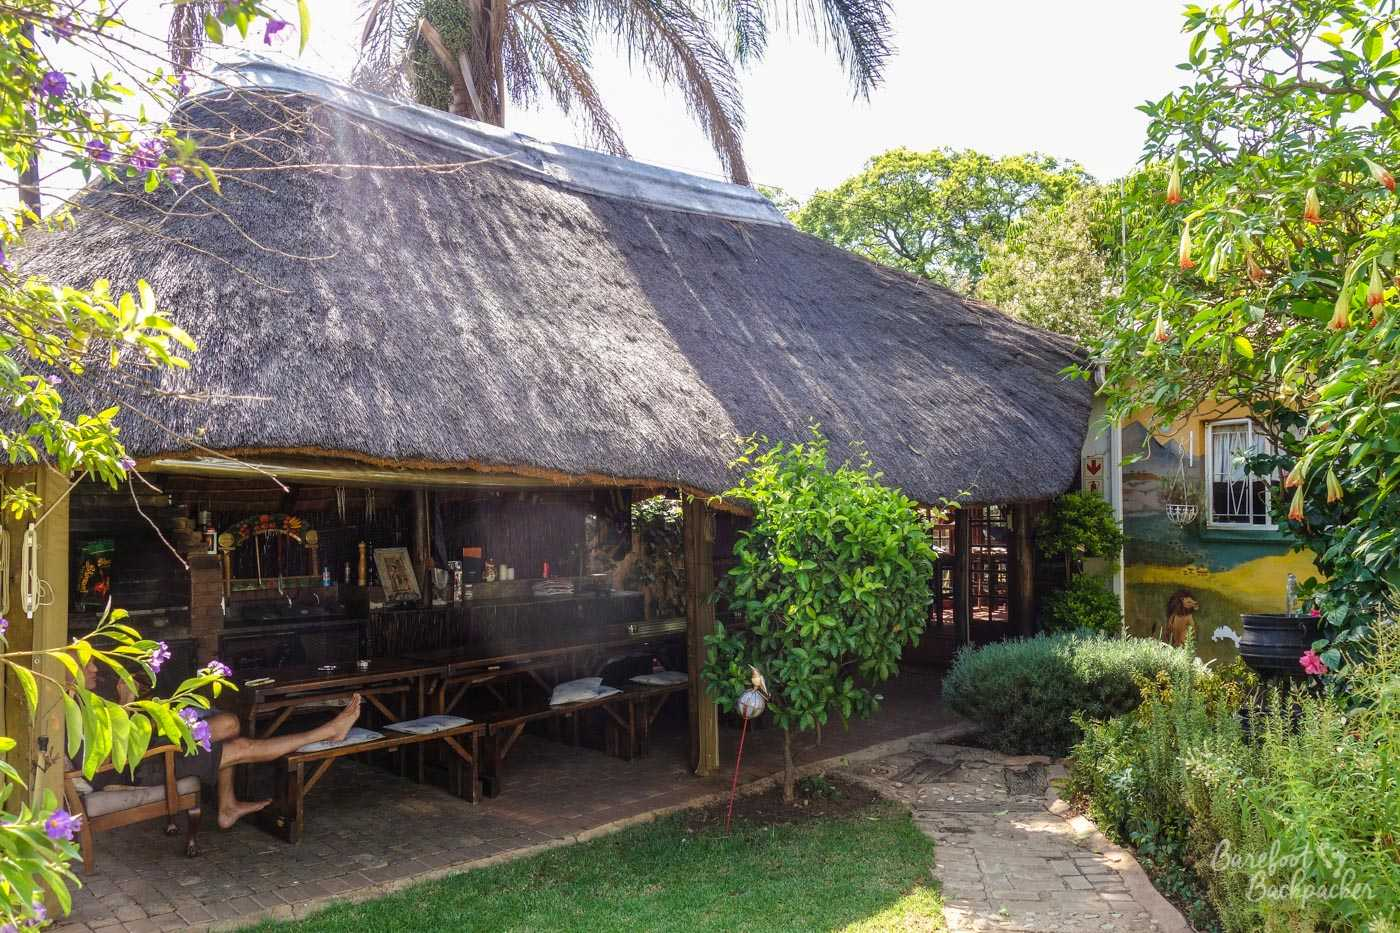 Thatched open-sided hut used as the outdoor dining area and braai in the Pretoria hostel.